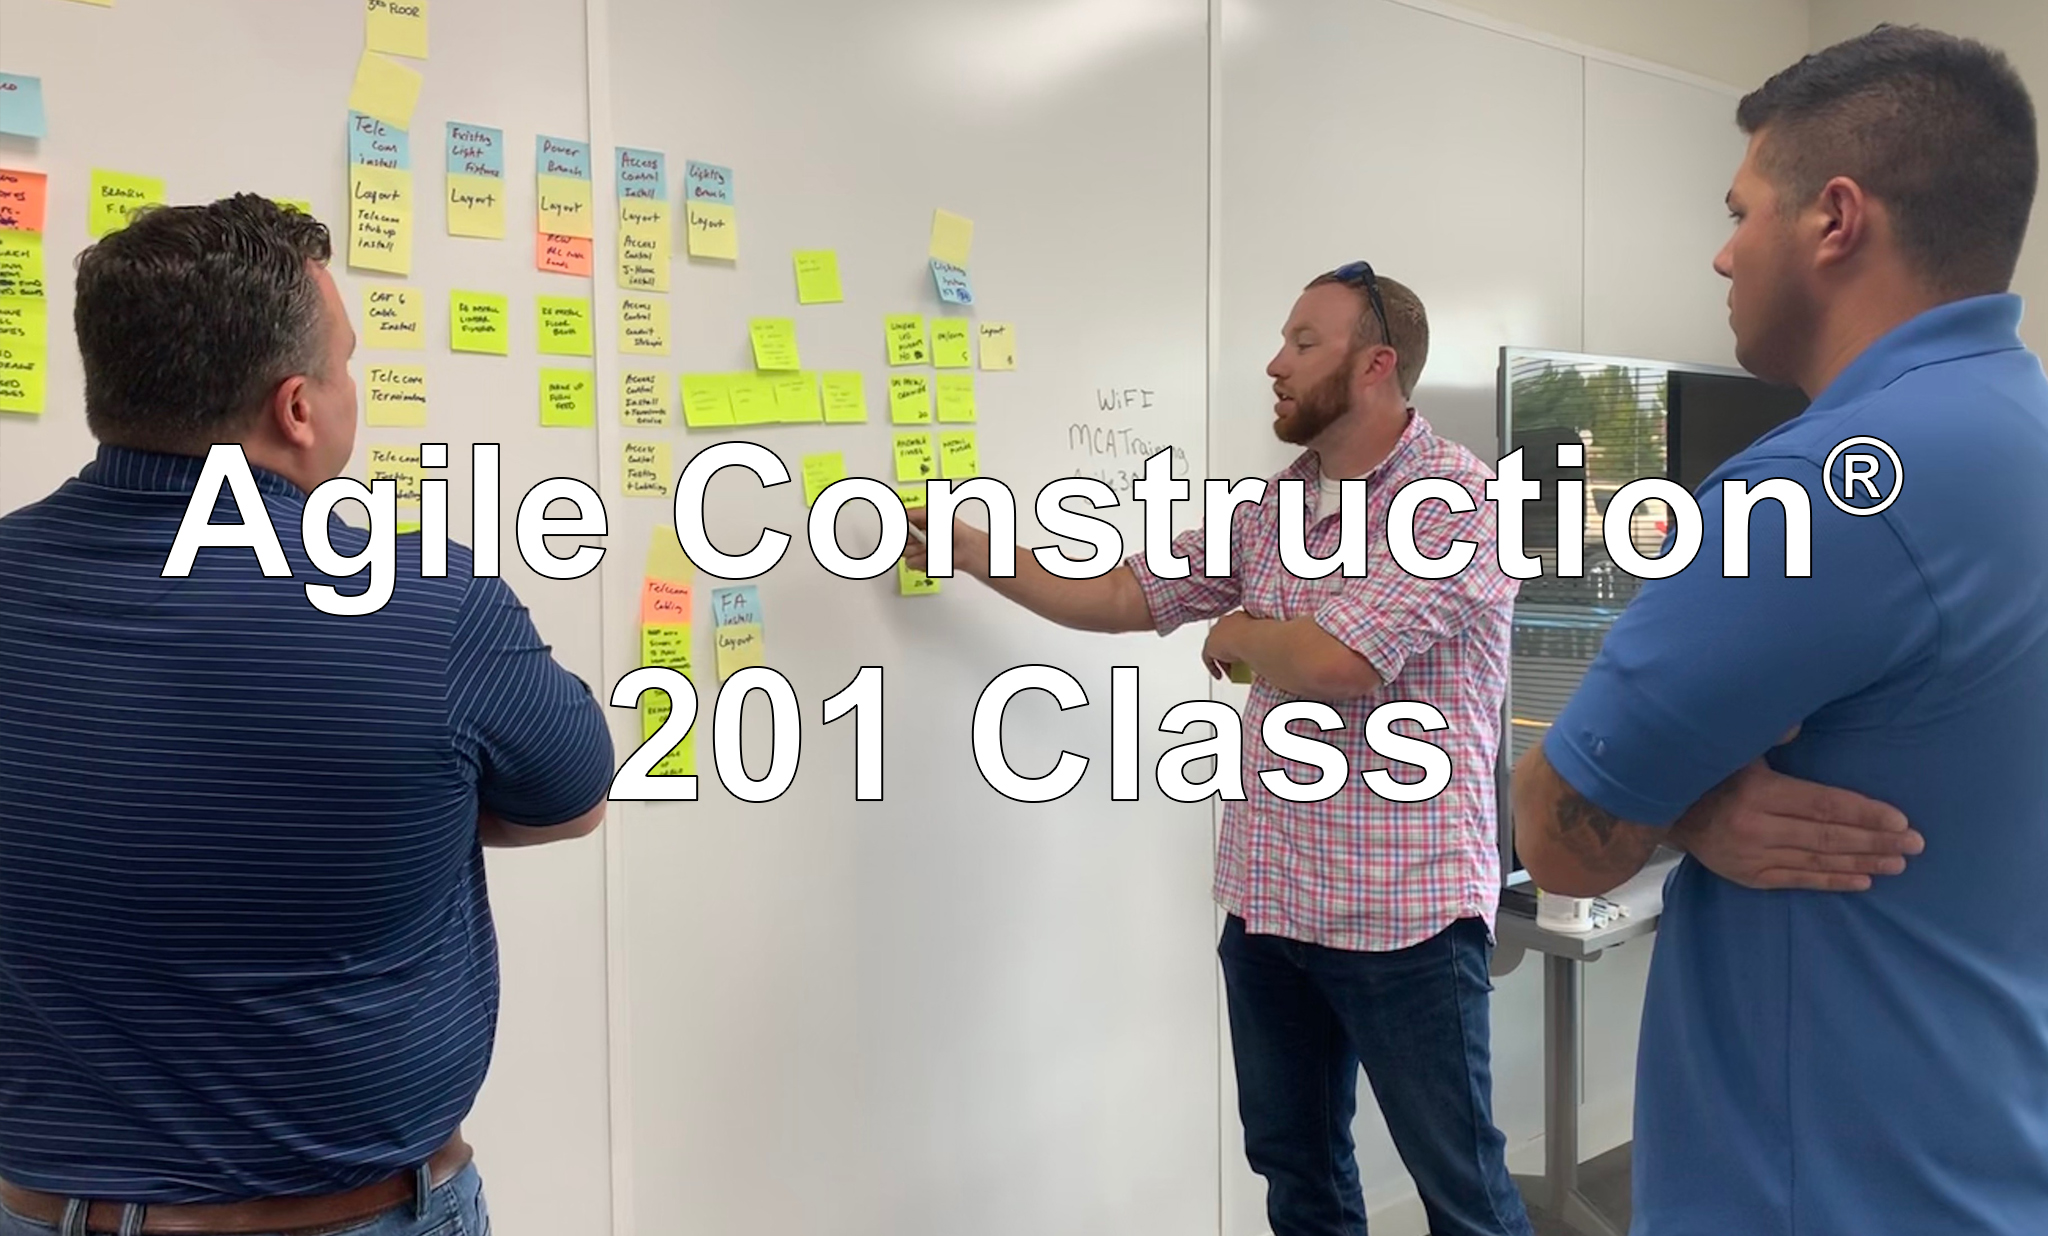 Agile Construction 201 graphic